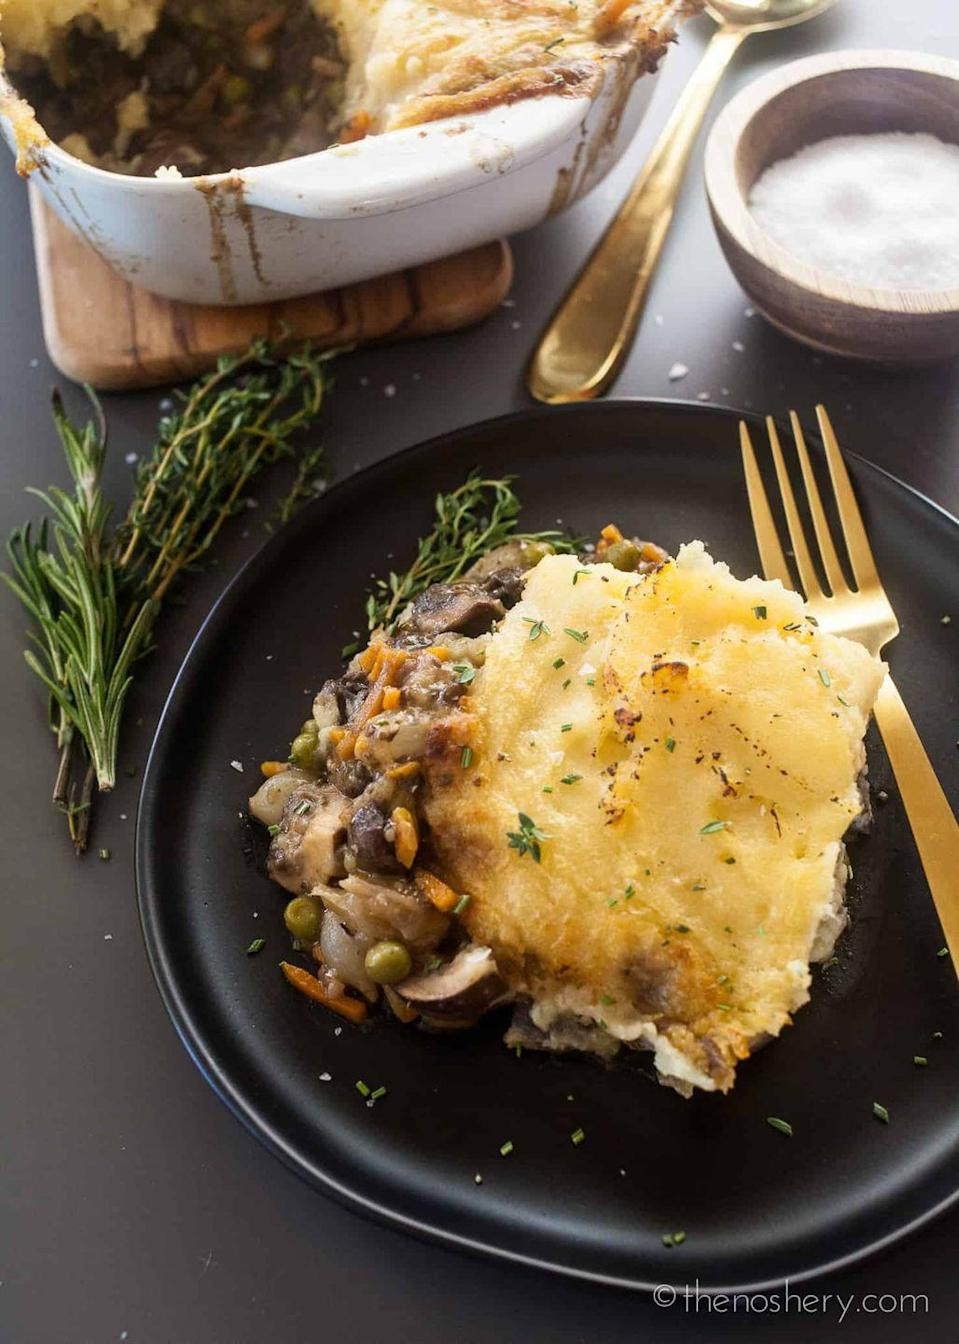 """<p>For an alternative take on the classic dish, swap the beef out for mushrooms.</p><p><strong>Get the recipe at <a href=""""https://thenoshery.com/mushroom-shepherds-pie/"""" rel=""""nofollow noopener"""" target=""""_blank"""" data-ylk=""""slk:The Noshery"""" class=""""link rapid-noclick-resp"""">The Noshery</a>.</strong> </p>"""